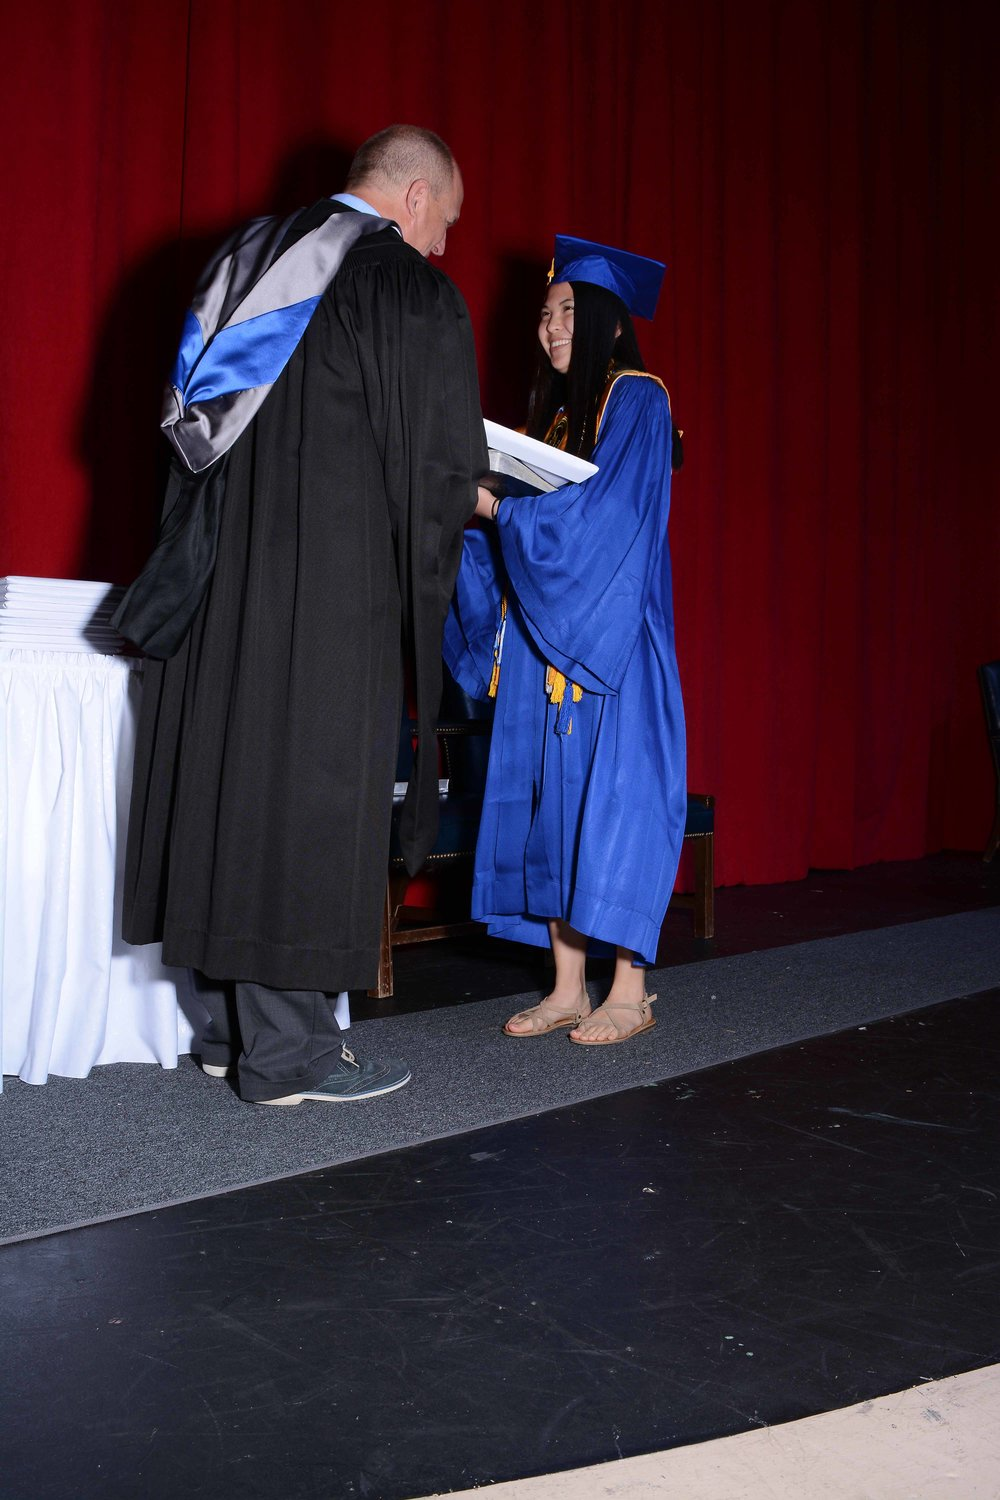 May14 Commencement101.jpg